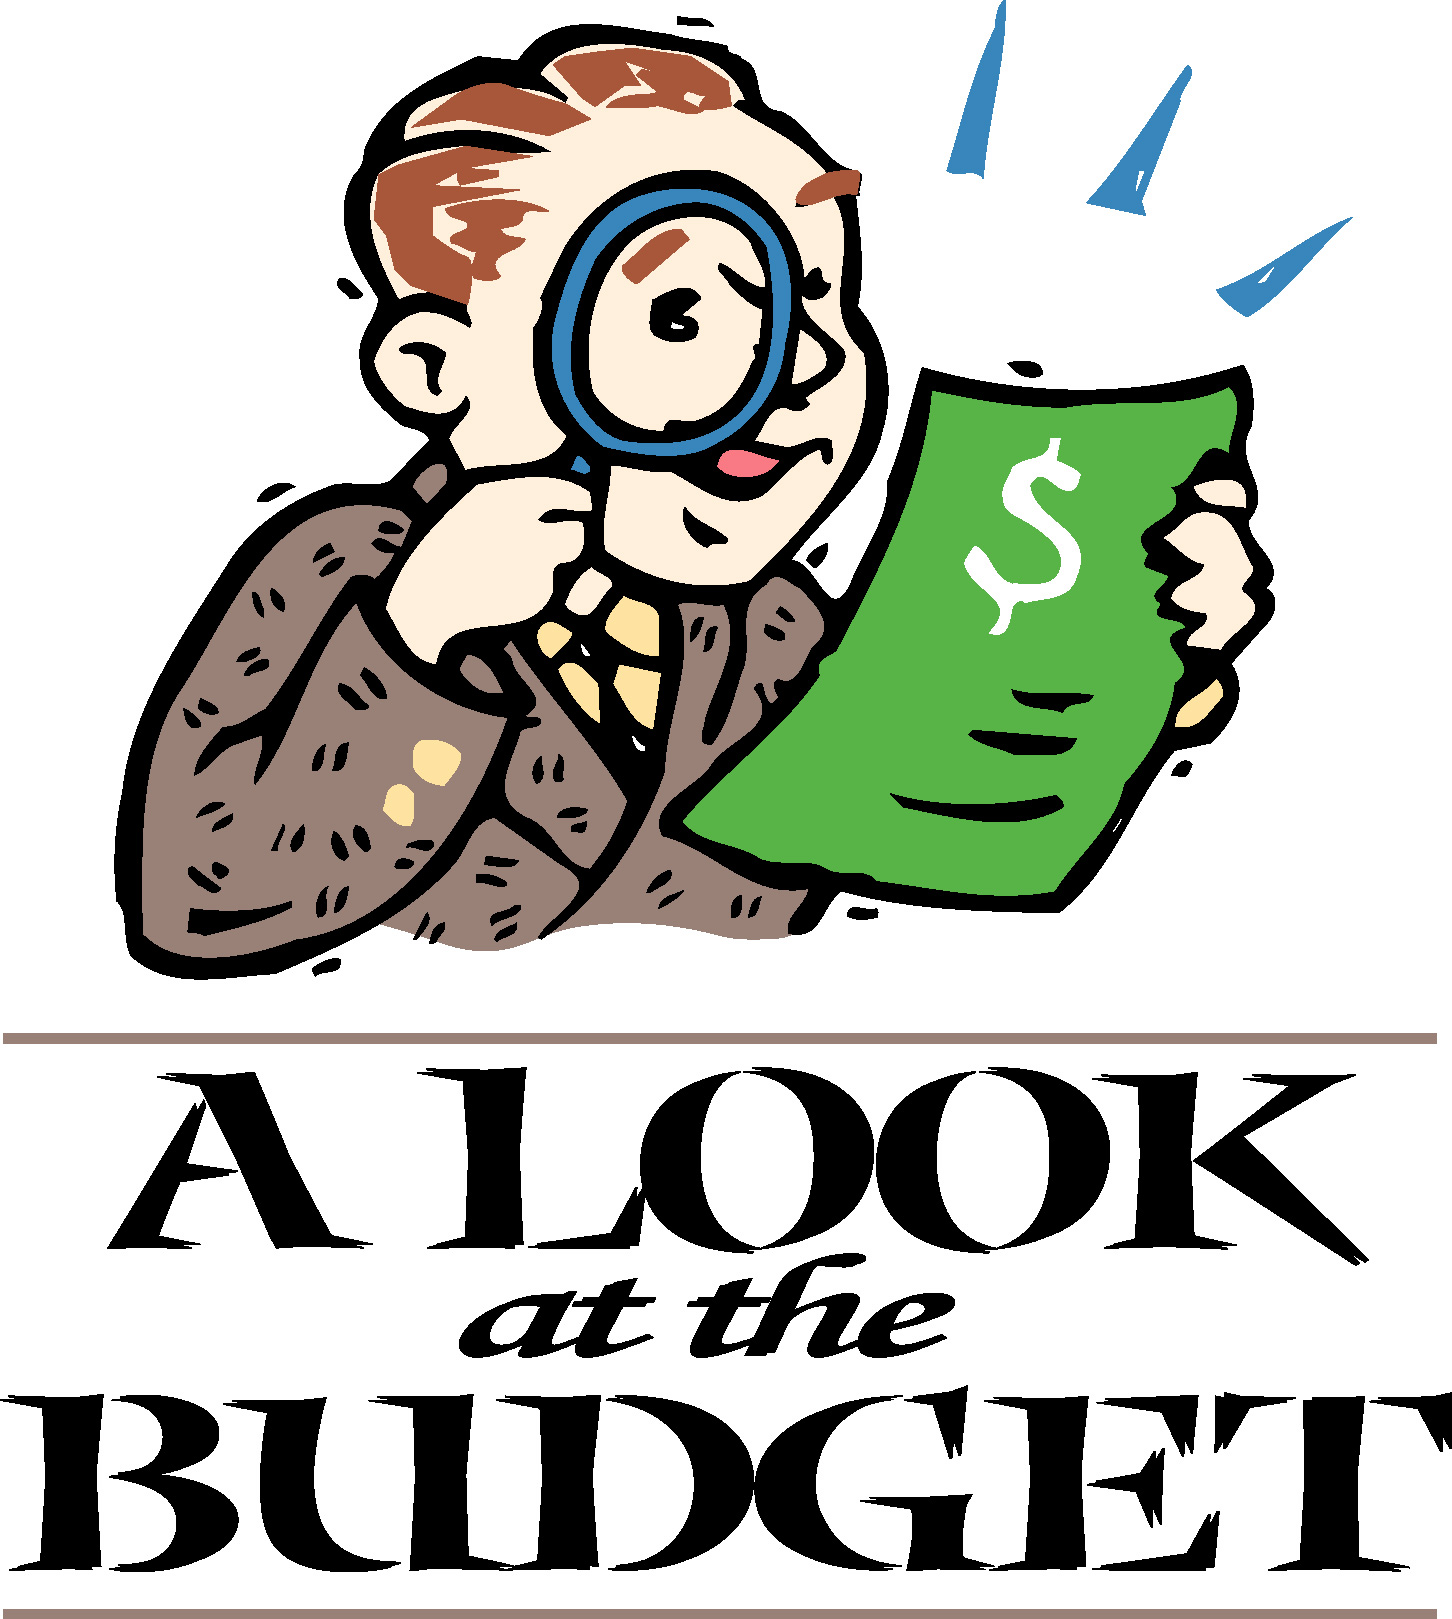 https://i1.wp.com/obama.net/wp-content/uploads/a-look-at-the-budget.jpg